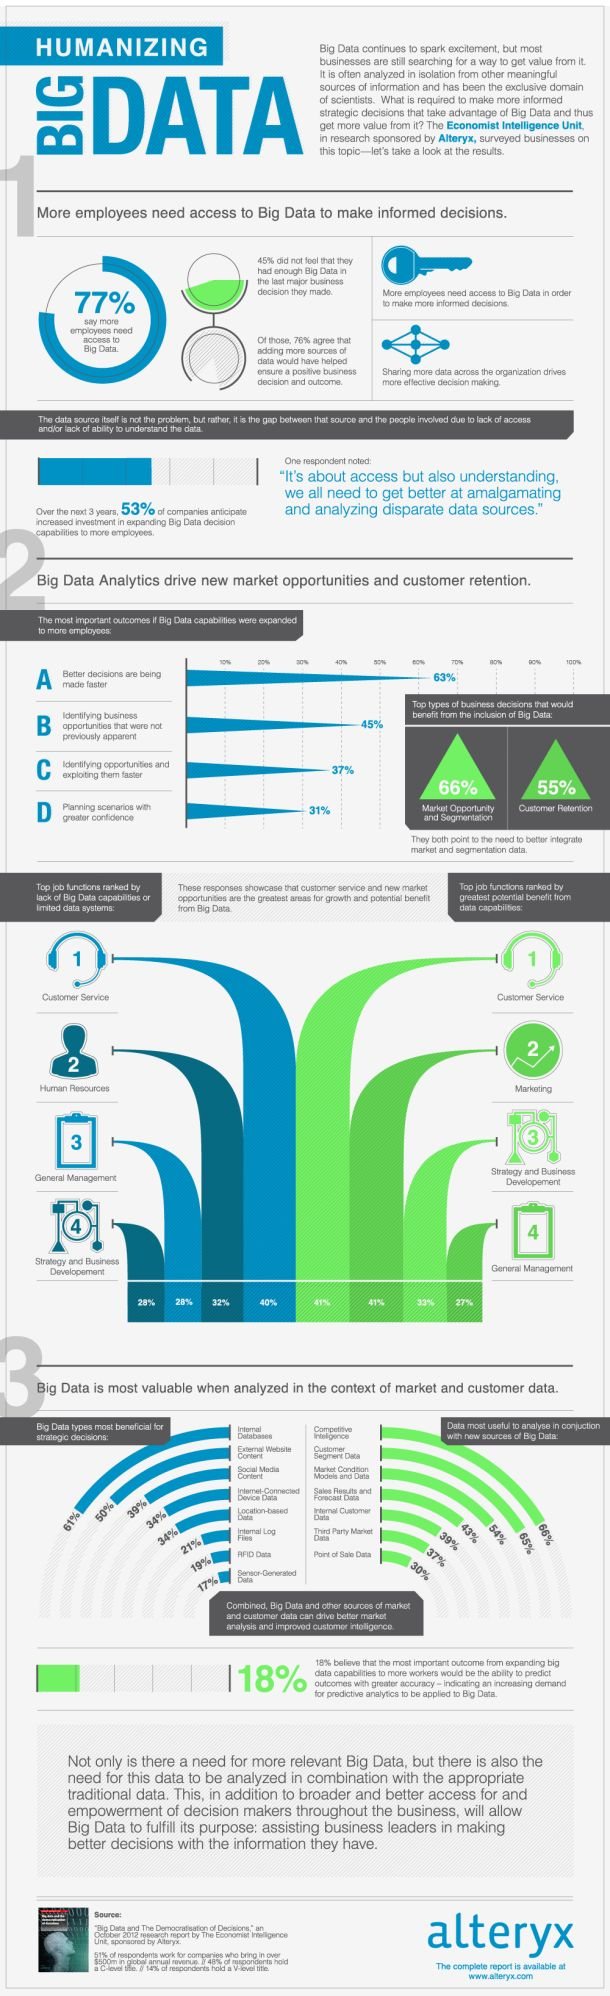 Humanizing Big Data [INFOGRAPHIC] Internet Site, Human Big, Bigdata Infographic,  Website, Social Media, Web Site, Analytics Bigdata, Infographic Big Data, Big Data Infographic